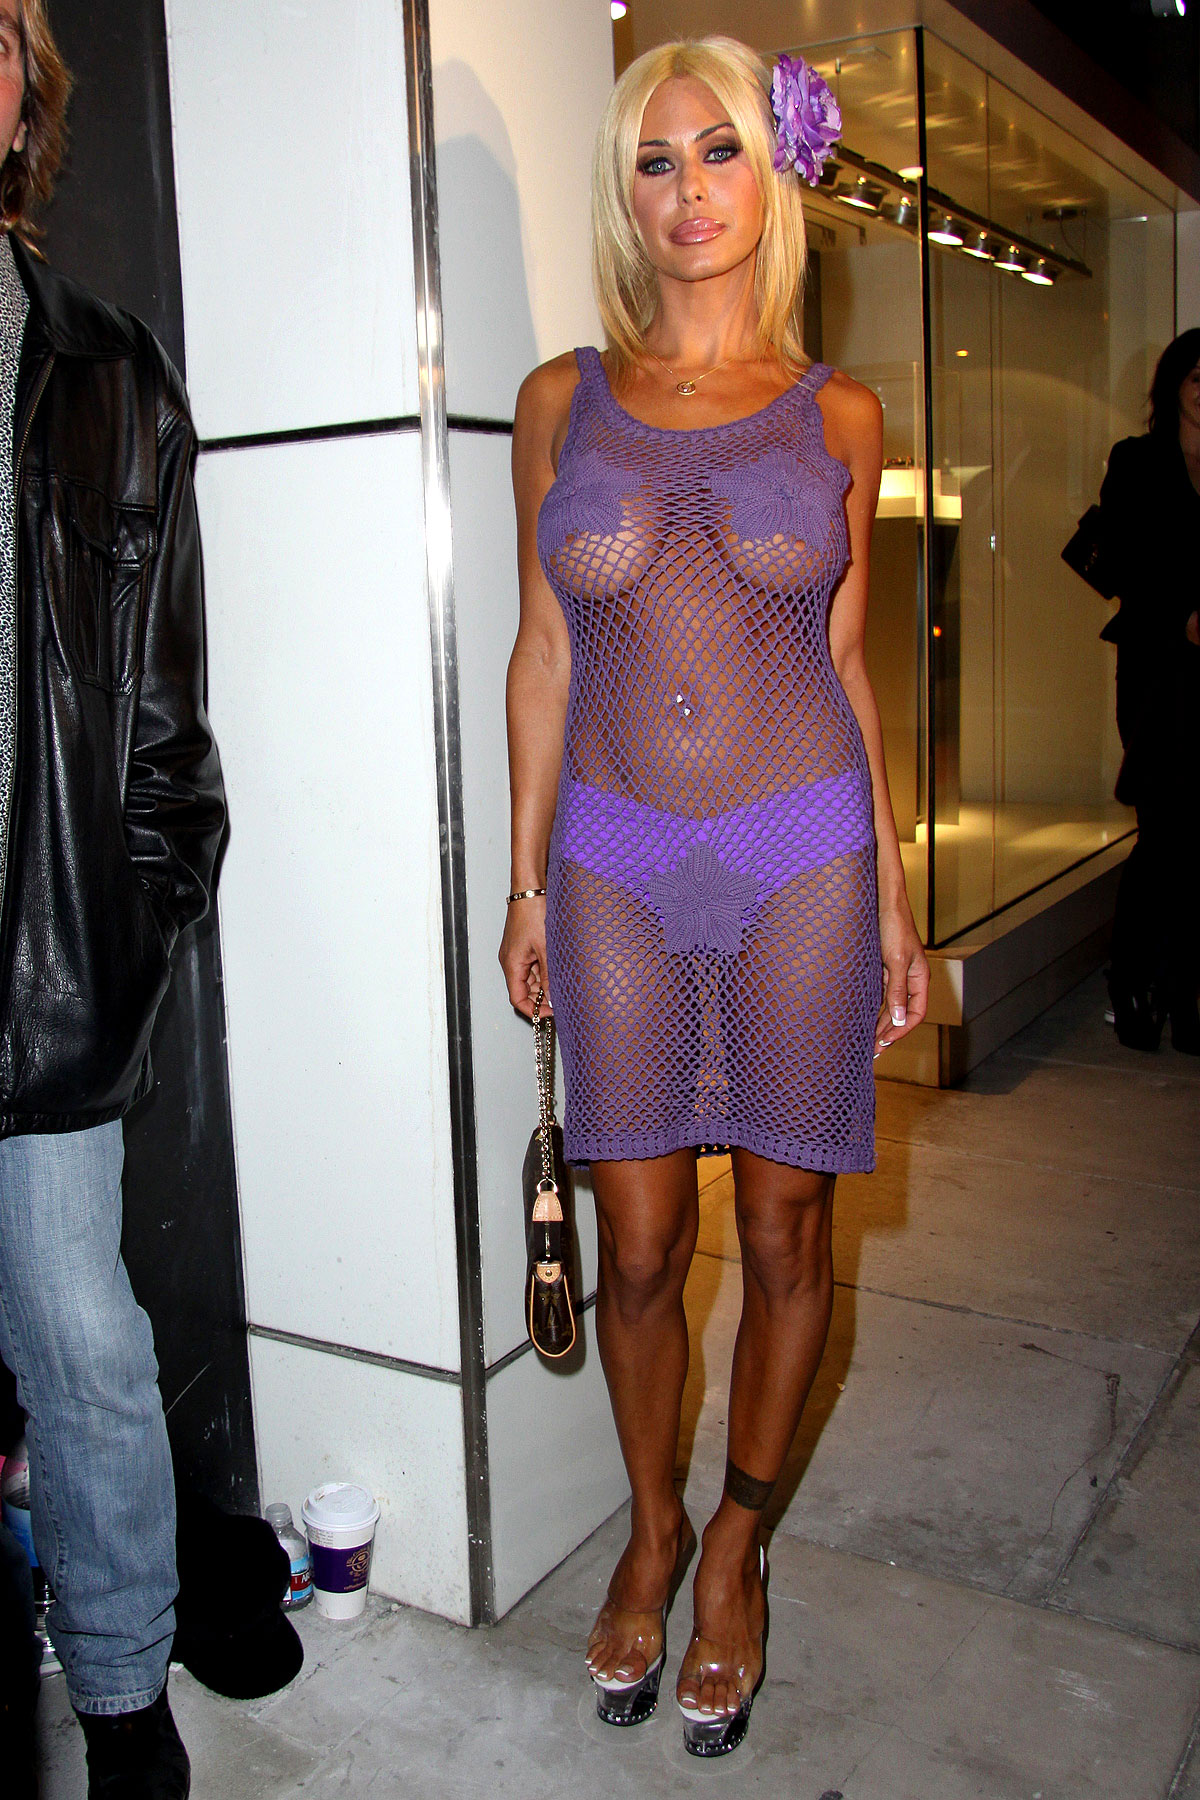 Fashion FAIL: Shauna Sands' Purple Web Of Awesome Exudes Class (PHOTOS)